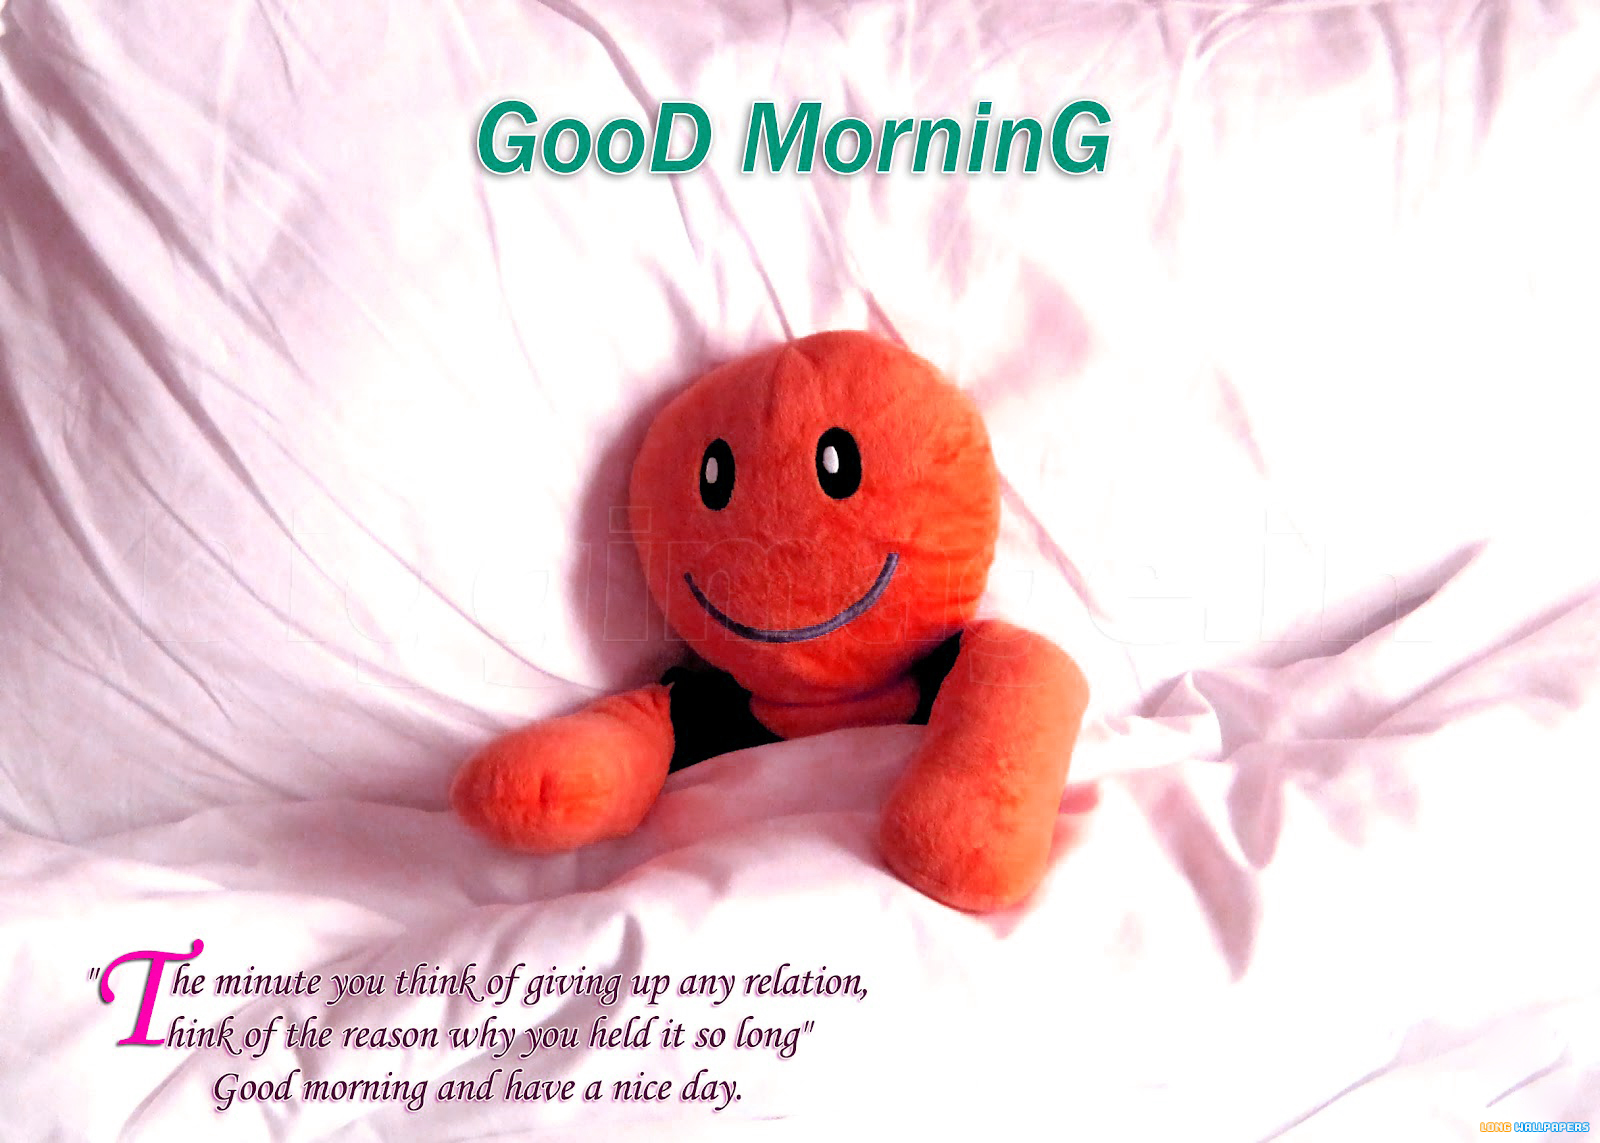 Good Morning On Facebook : Good morning quotes for facebook quotesgram